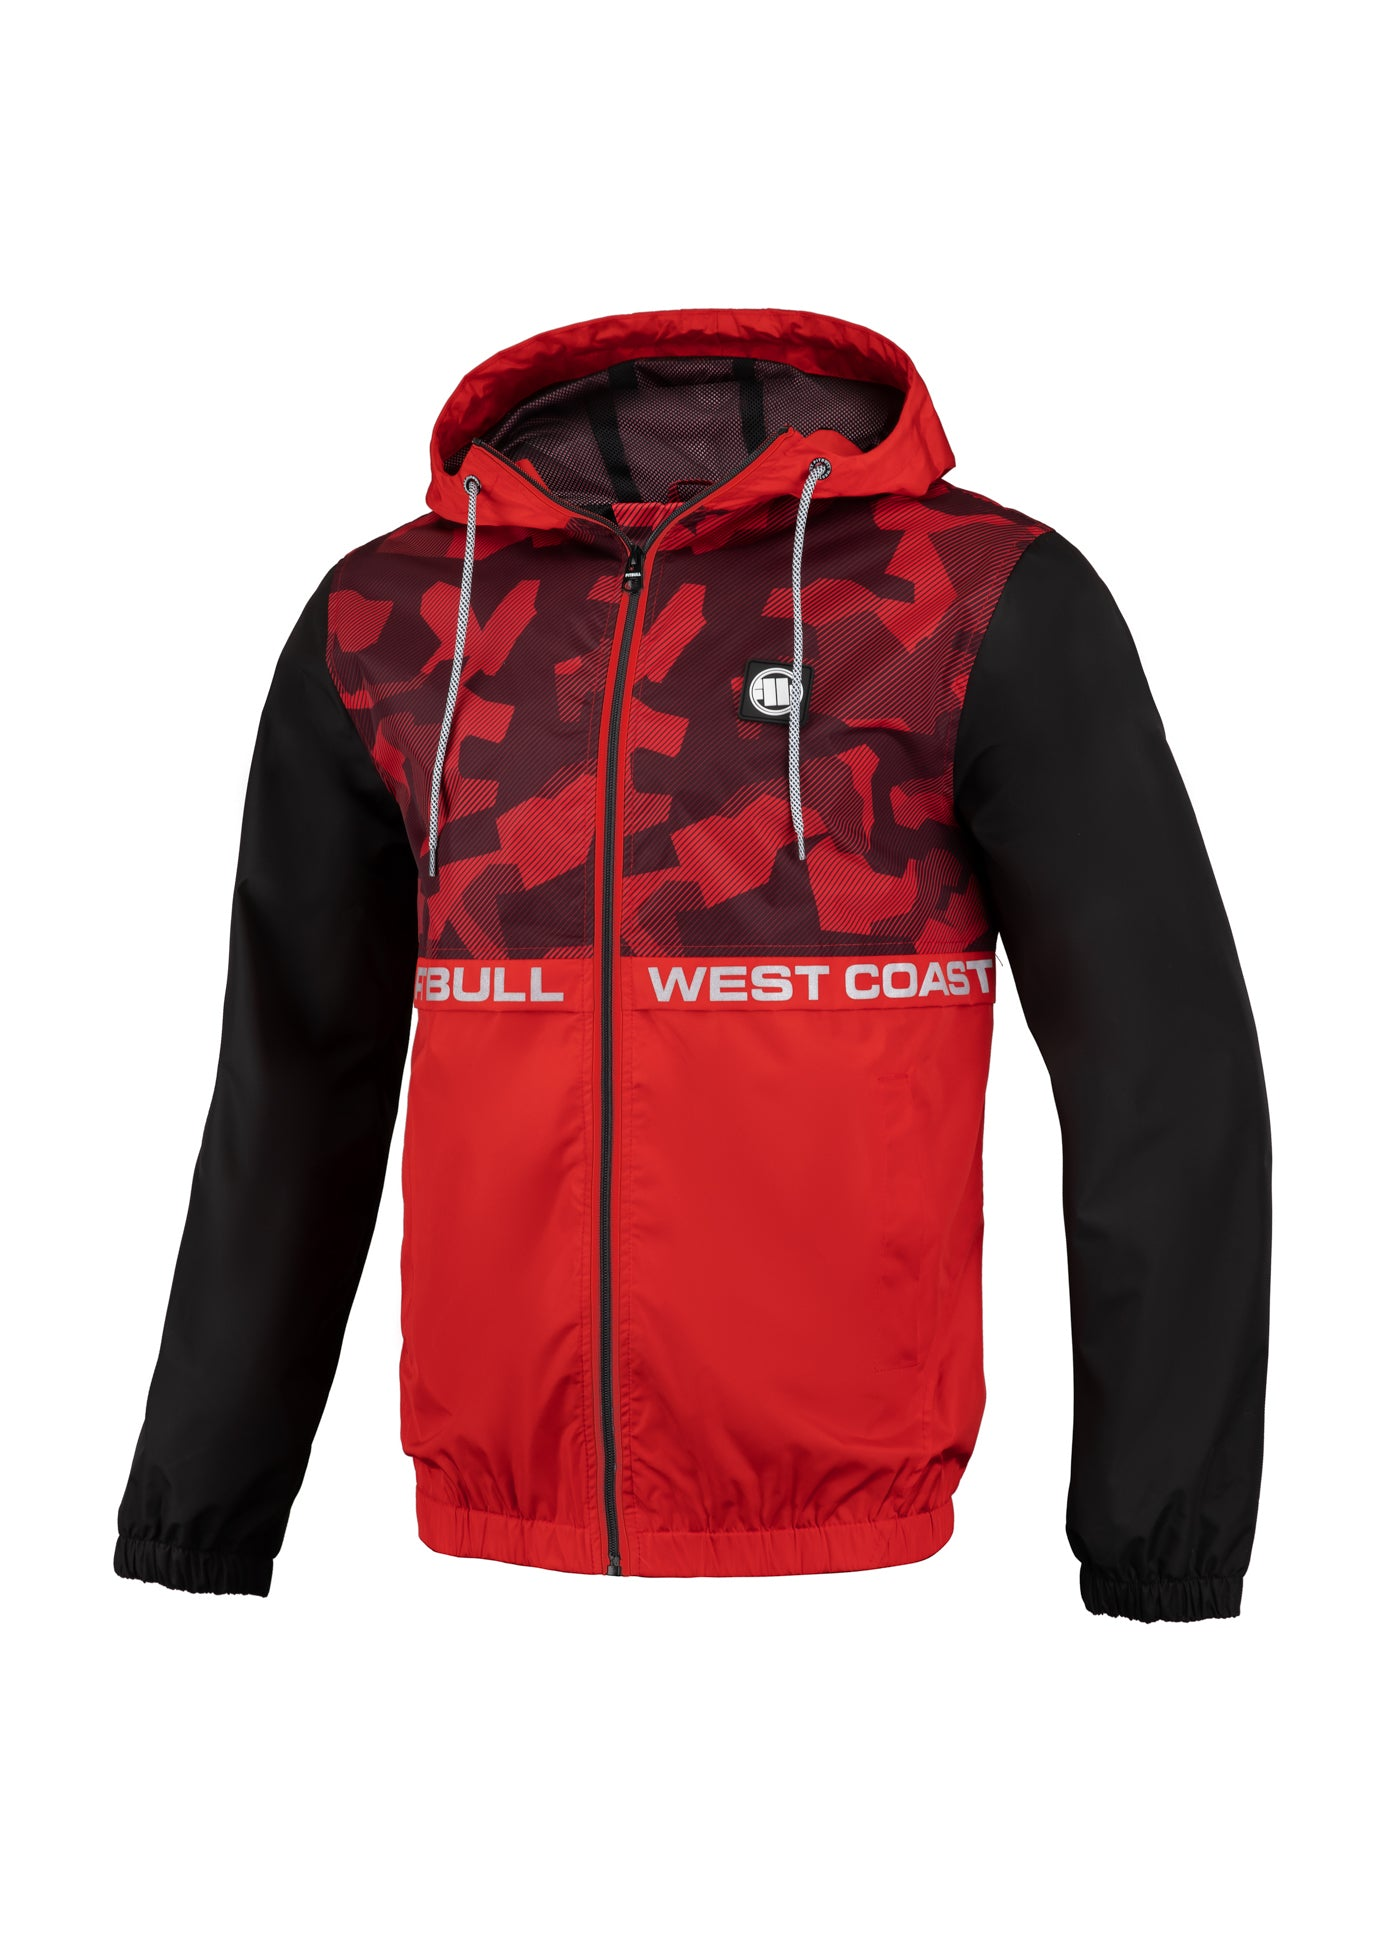 SHERWOOD Thick Hooded Nylon Jacket Red/Camo - pitbullwestcoast